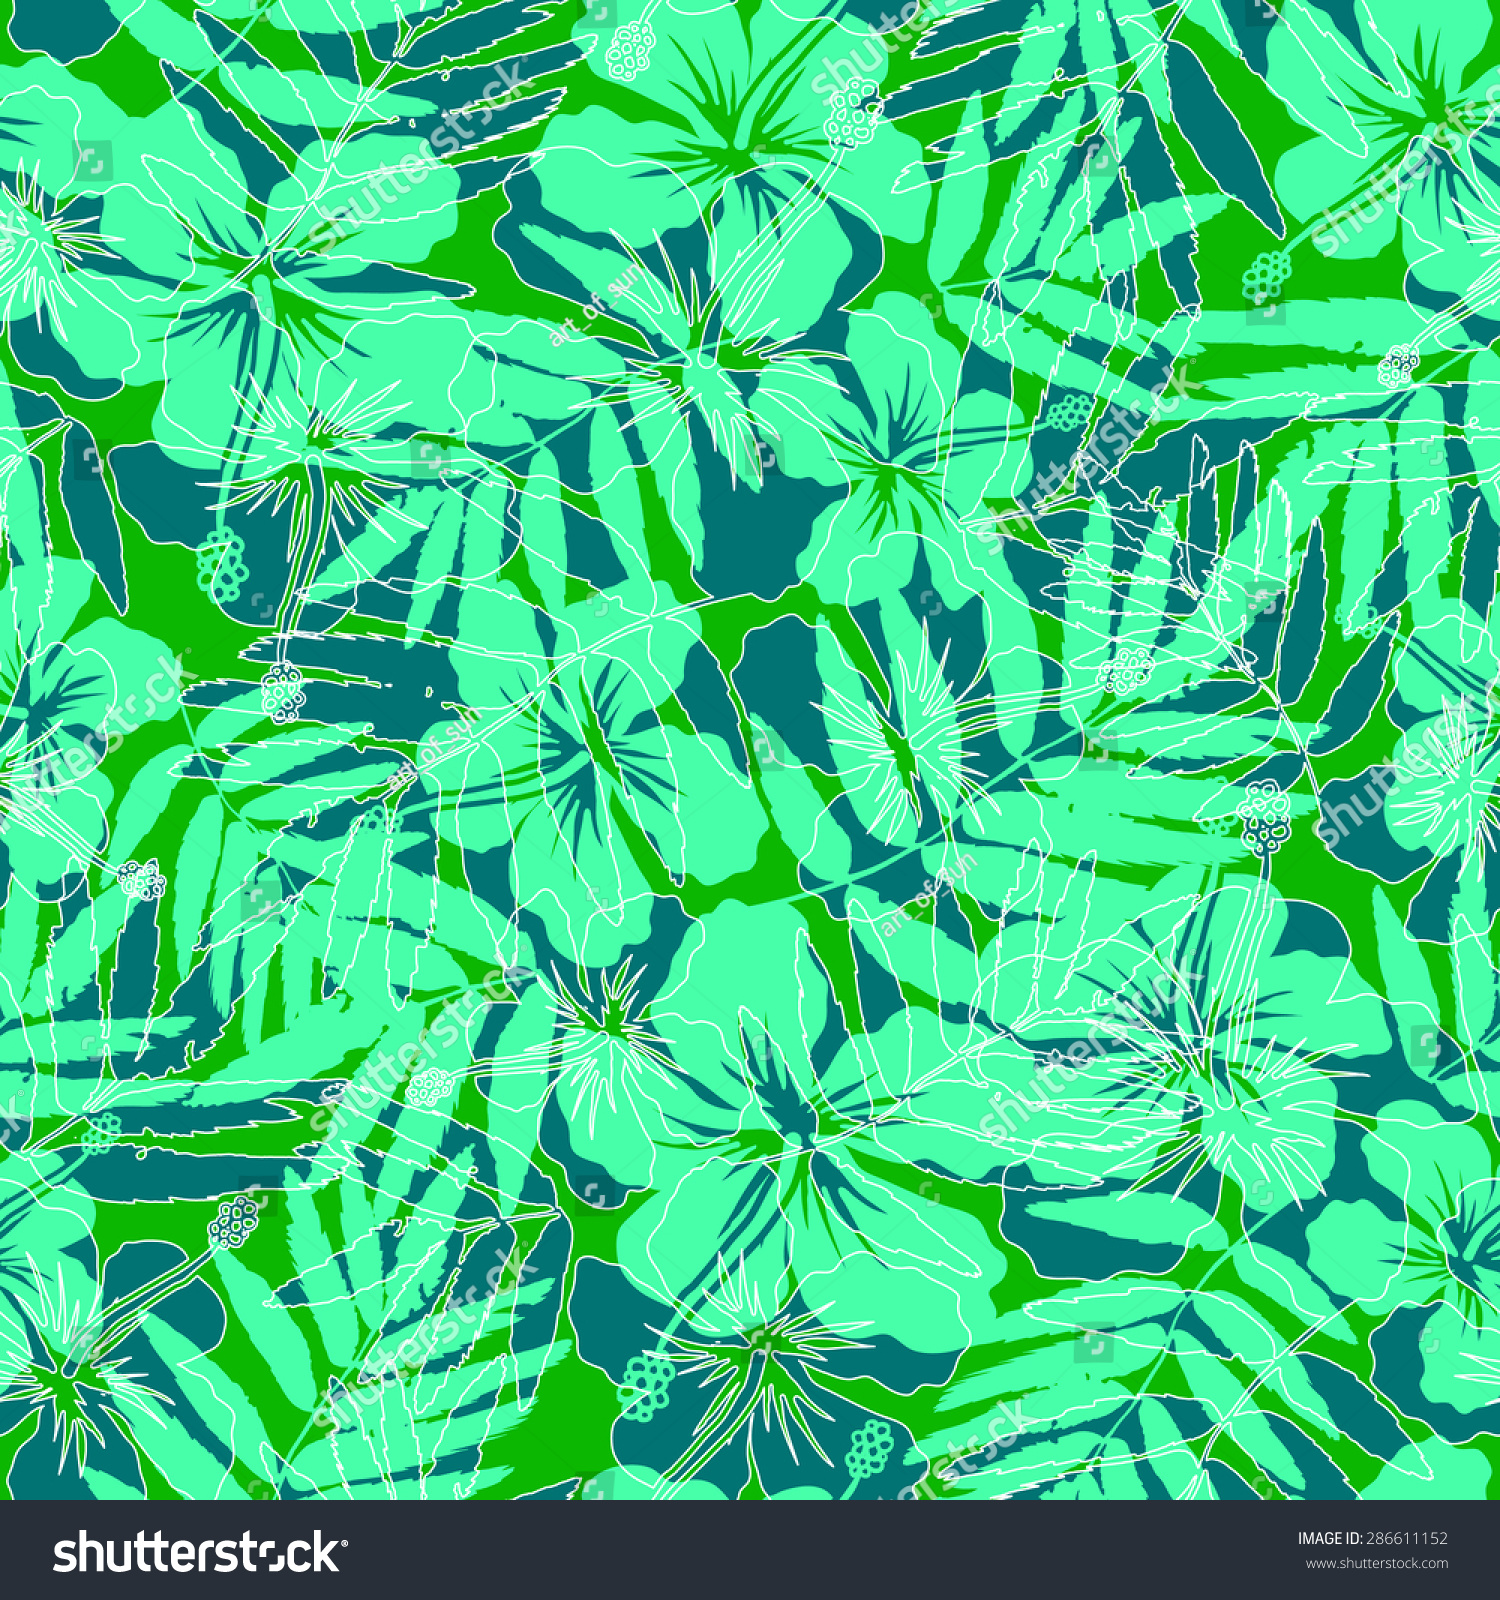 Green Tropical Flowers Silhouettes Vector Seamless Pattern